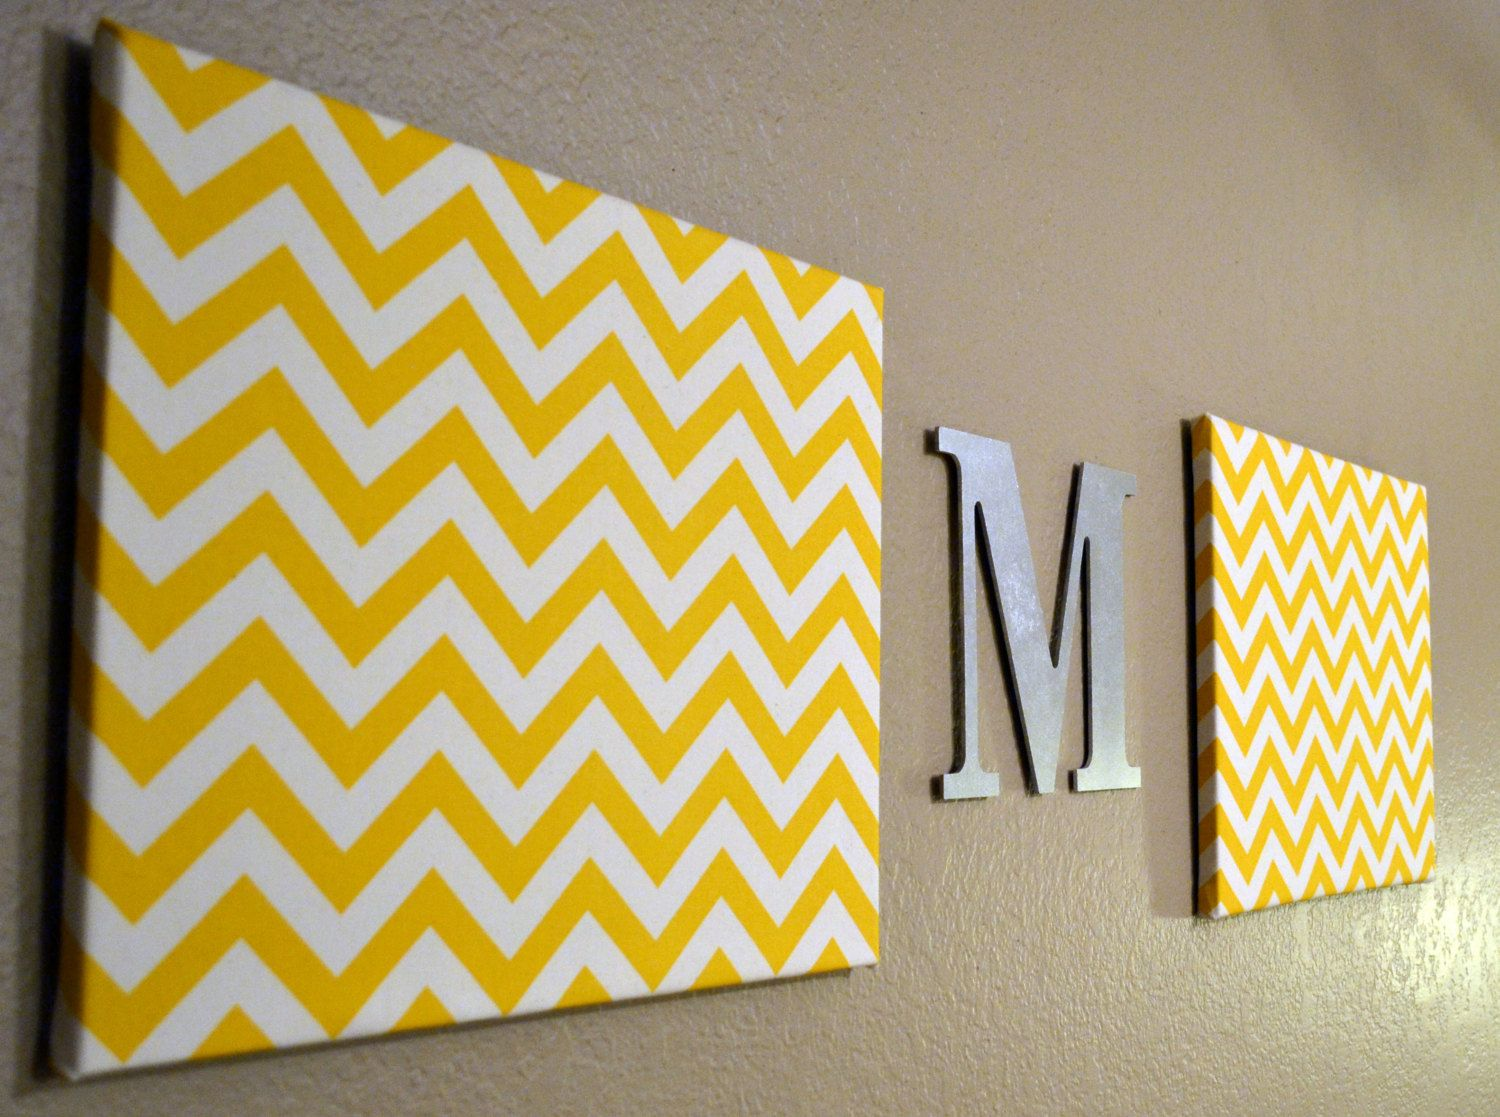 Chevron artwork | Ideas for my Teal/Yellow Office Space | Pinterest ...